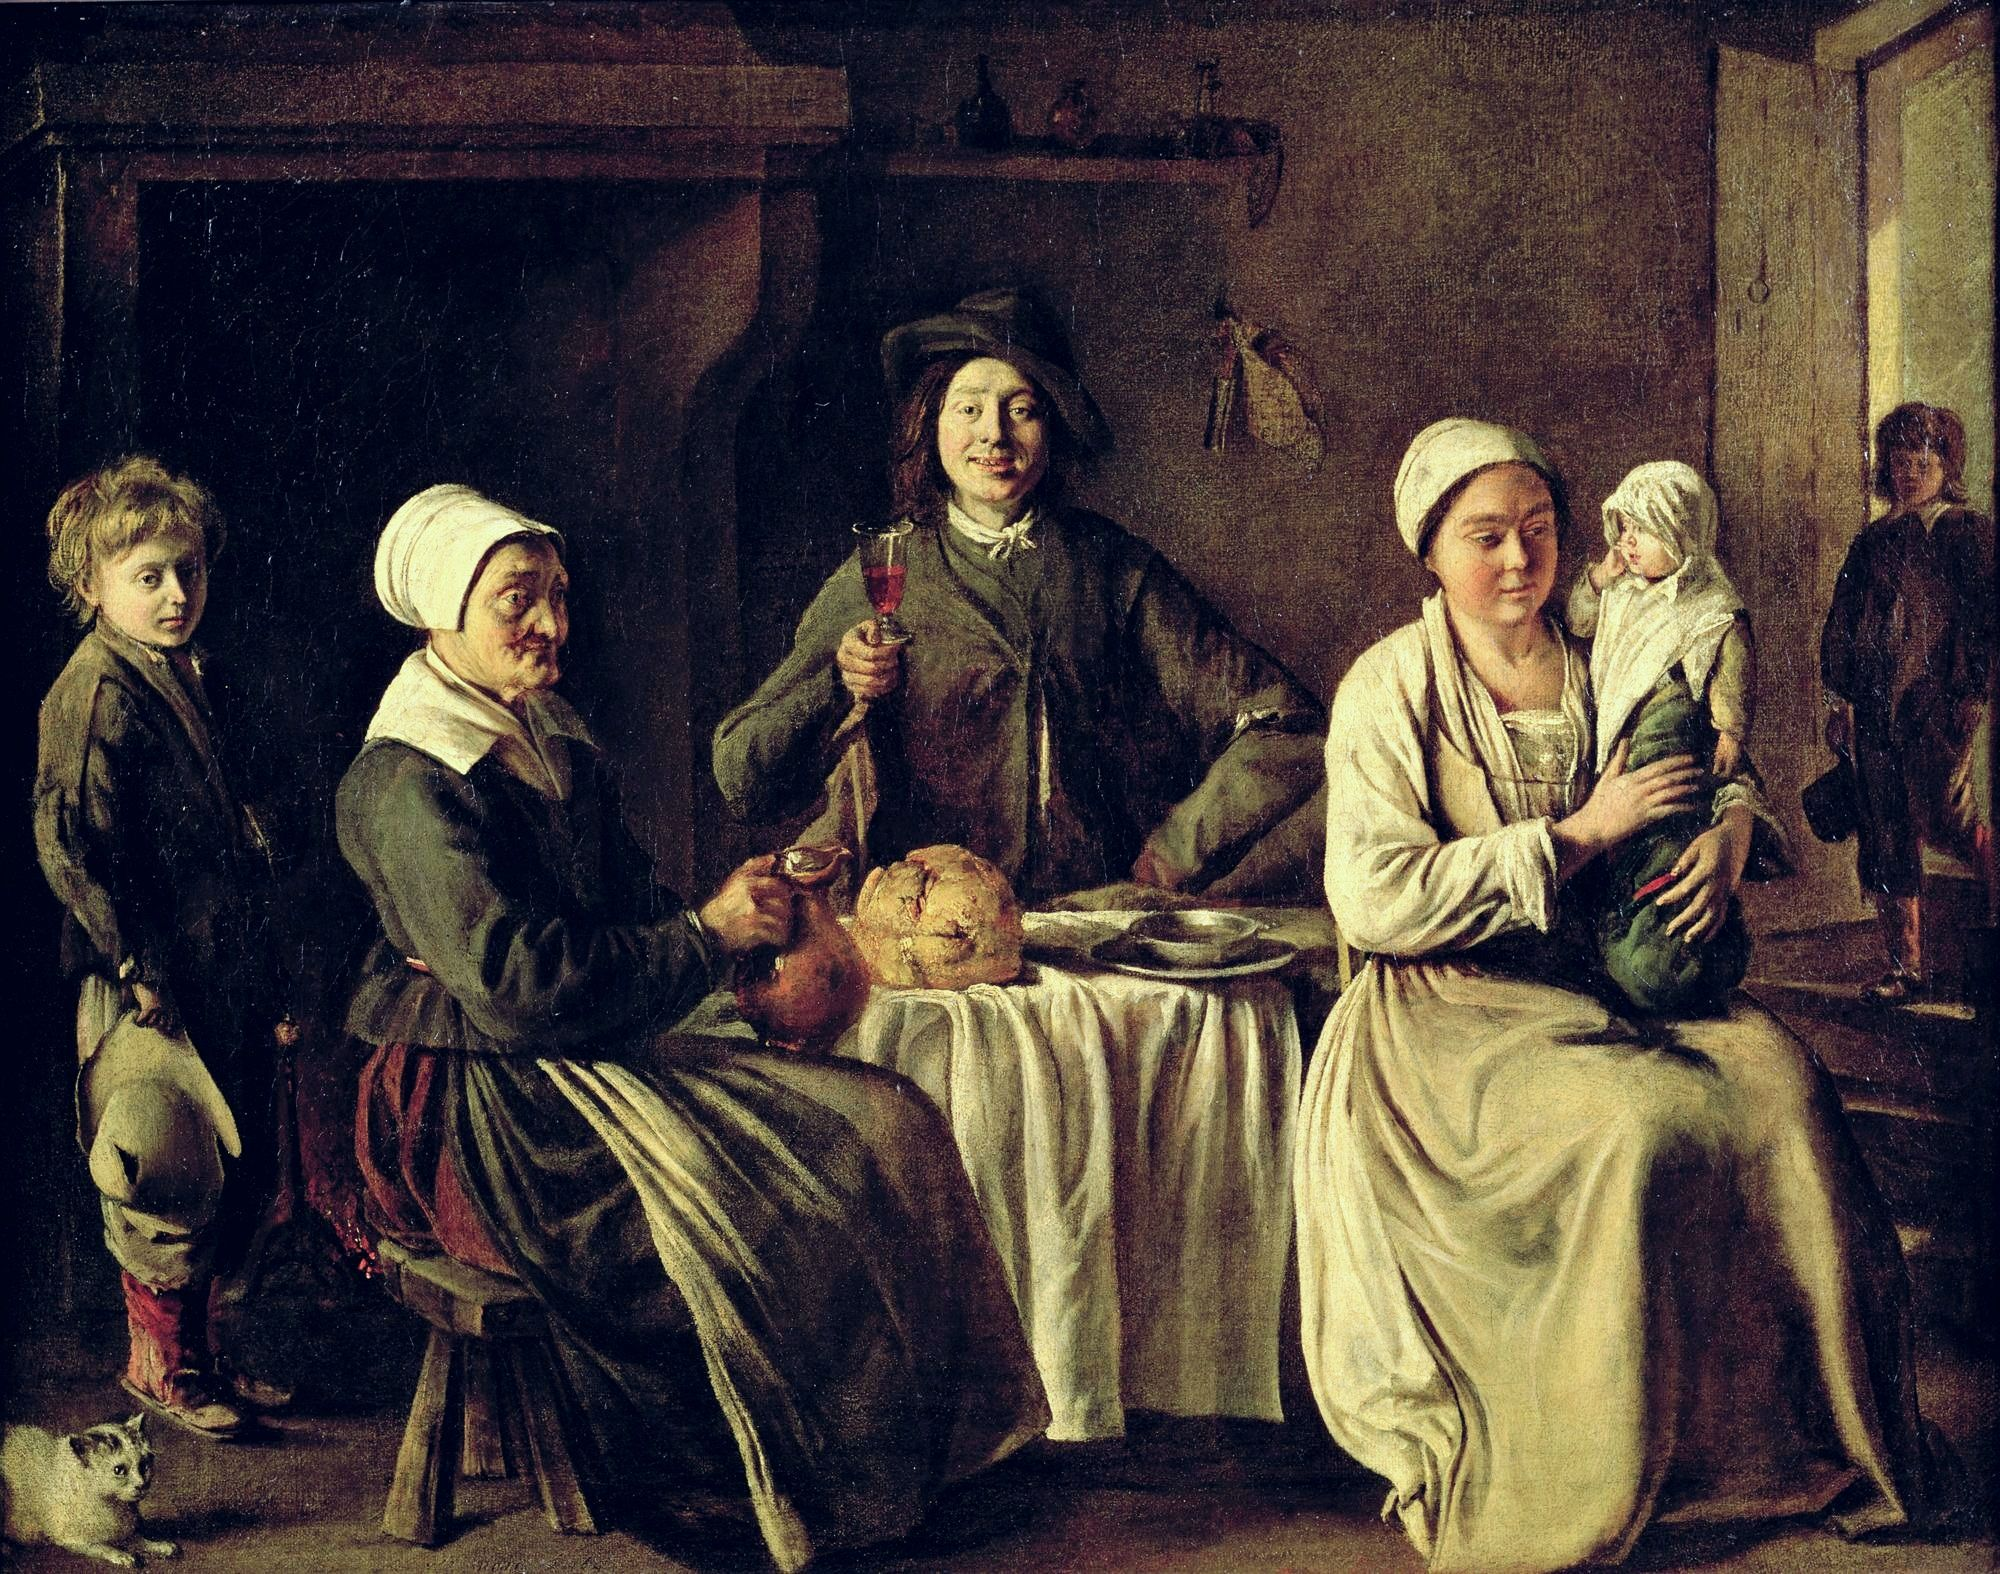 PWI90079 The Peasant Family, 1642 (oil on canvas) by Le Nain, Antoine and Louis (d.1648) & Mathieu (1607-77); 61x78 cm; Louvre, Paris, France; Peter Willi; French,  out of copyright